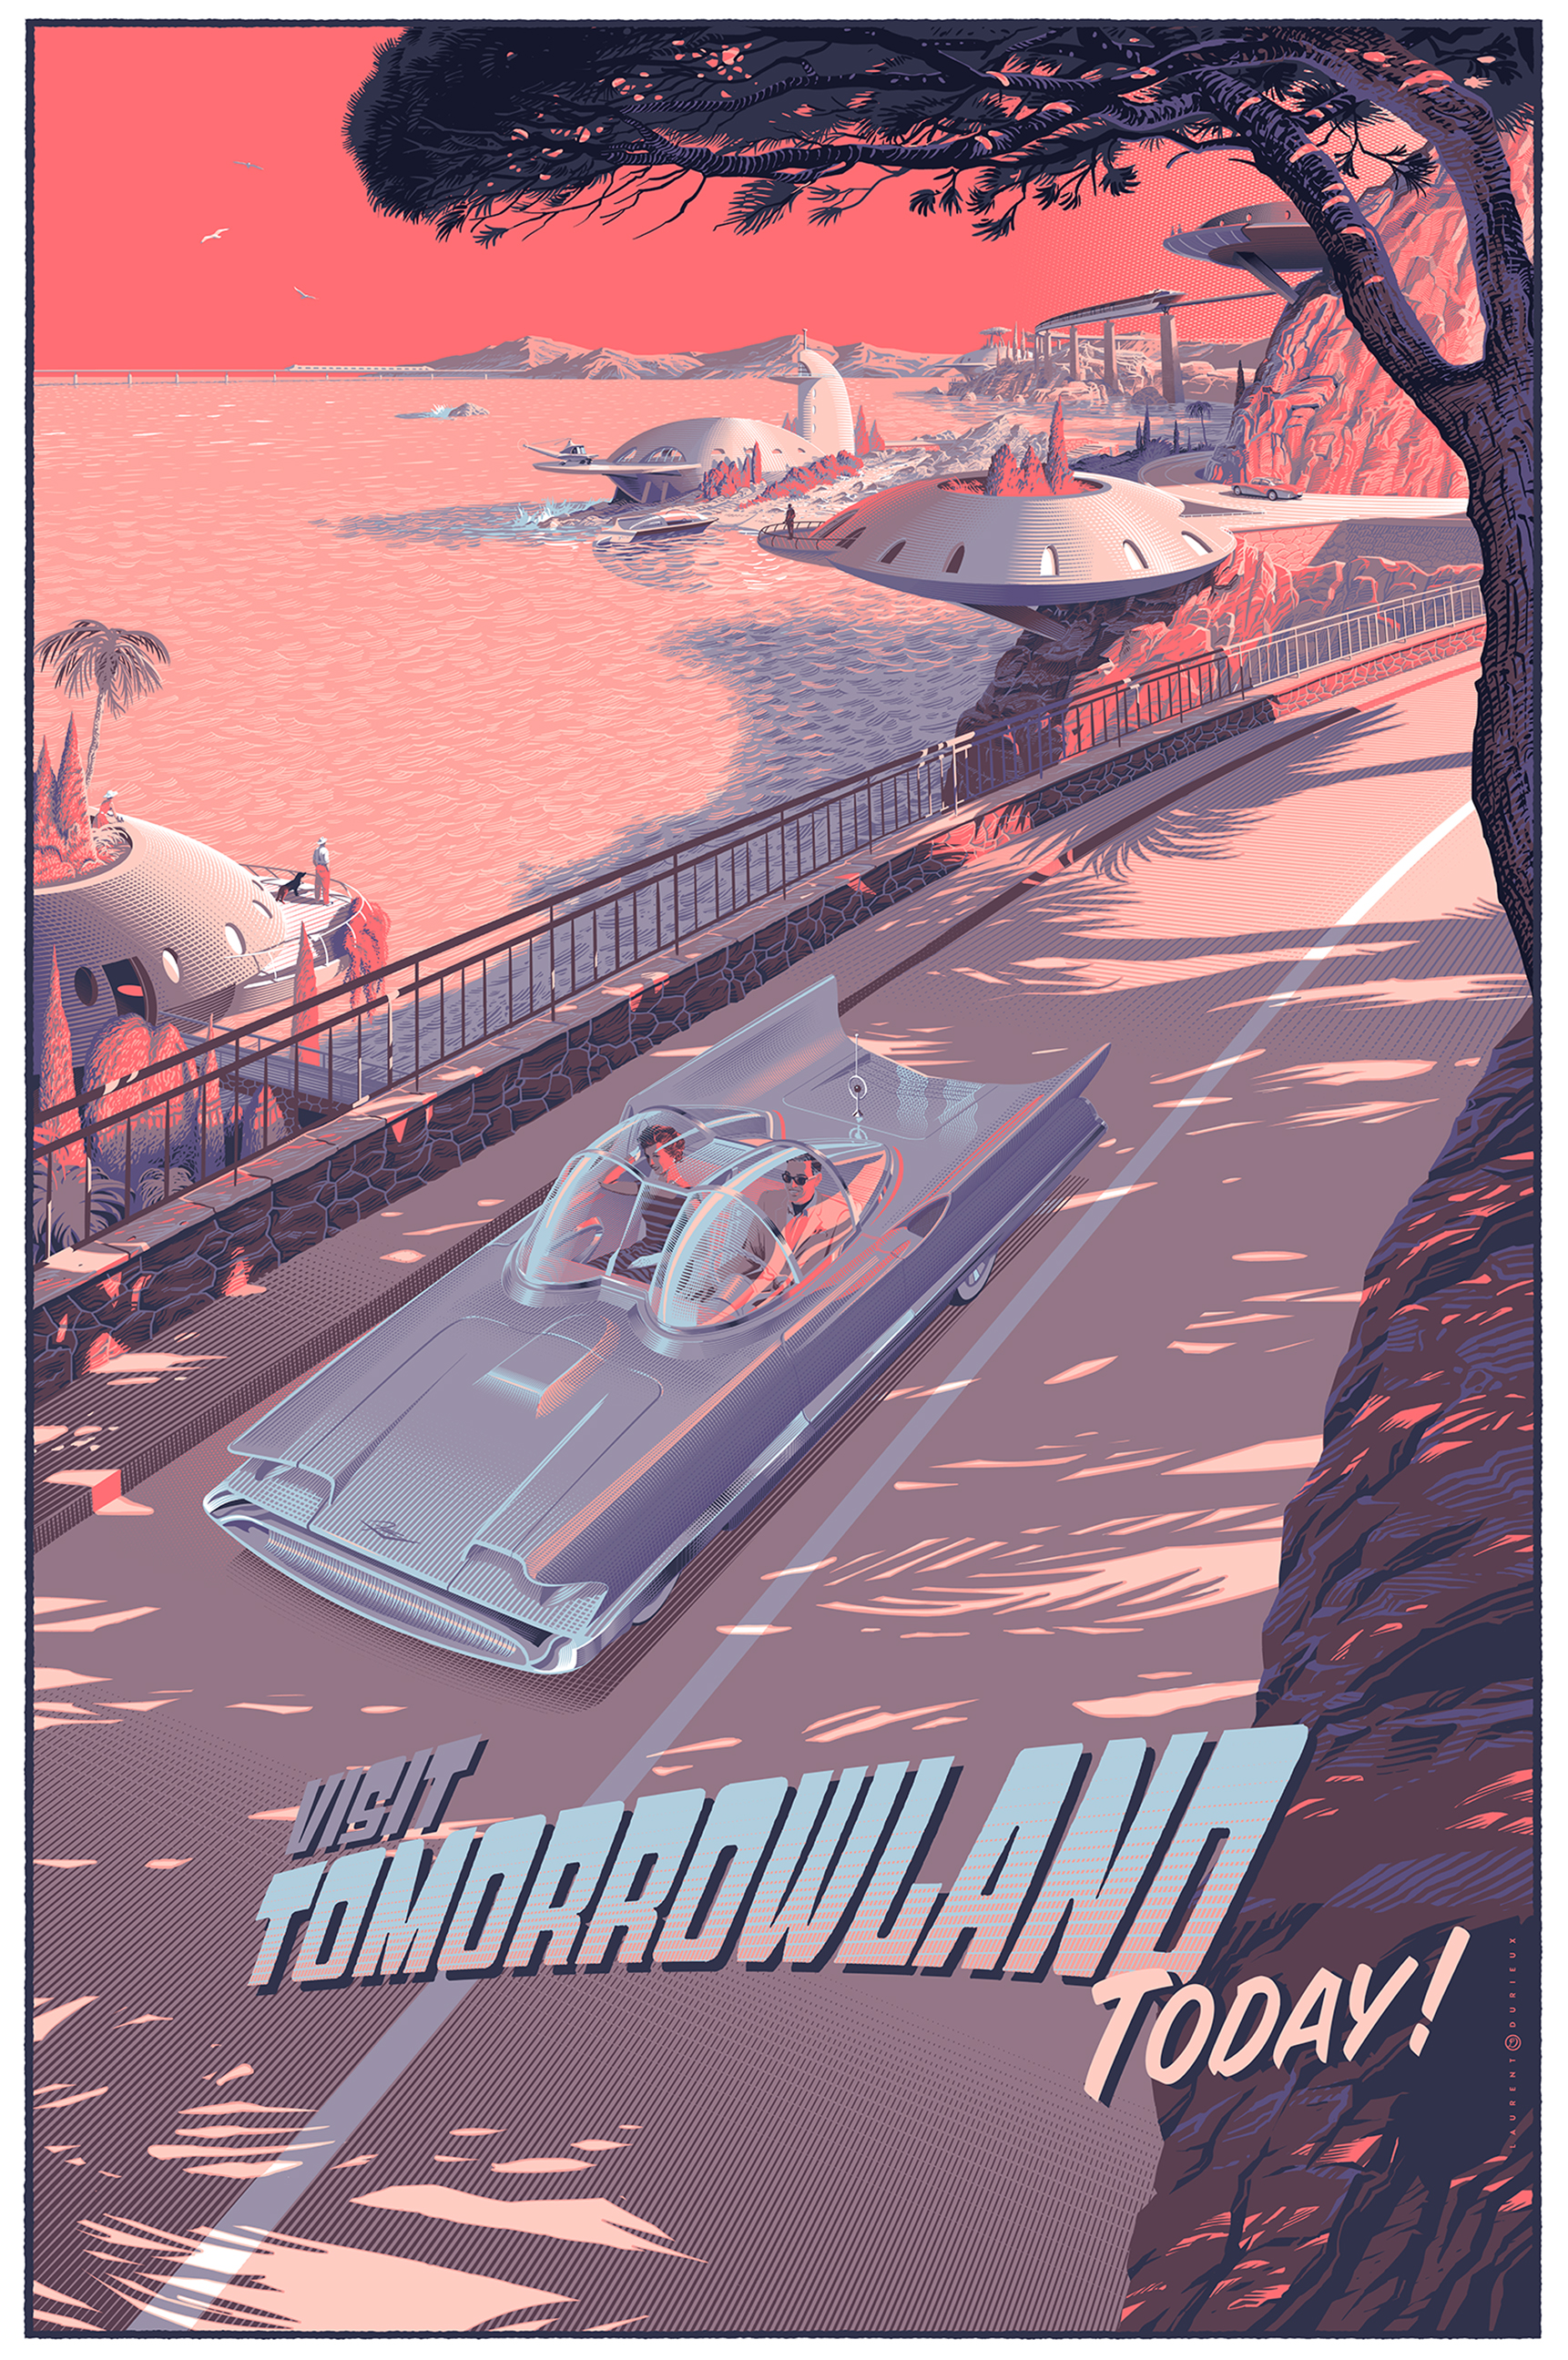 """Visit Tomorrowland Today!"" by Laurent Durieux.  24"" x 36"" 11-color Screenprint.  Ed of 250 S/N.  60 Euro ($68)"